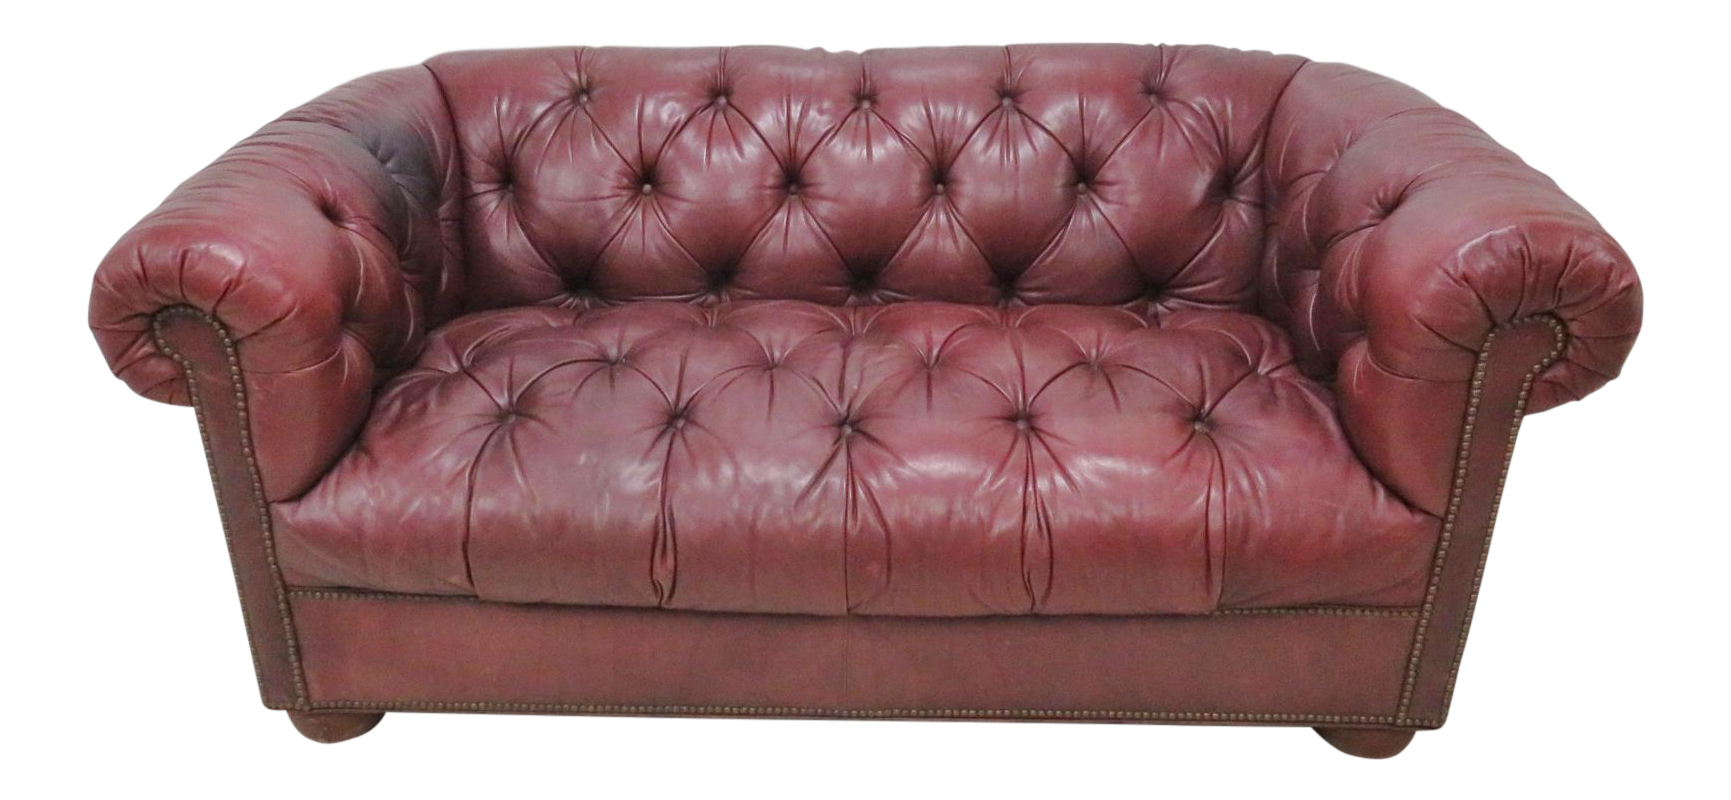 Burgundy Tufted Leather Chesterfield Sofa